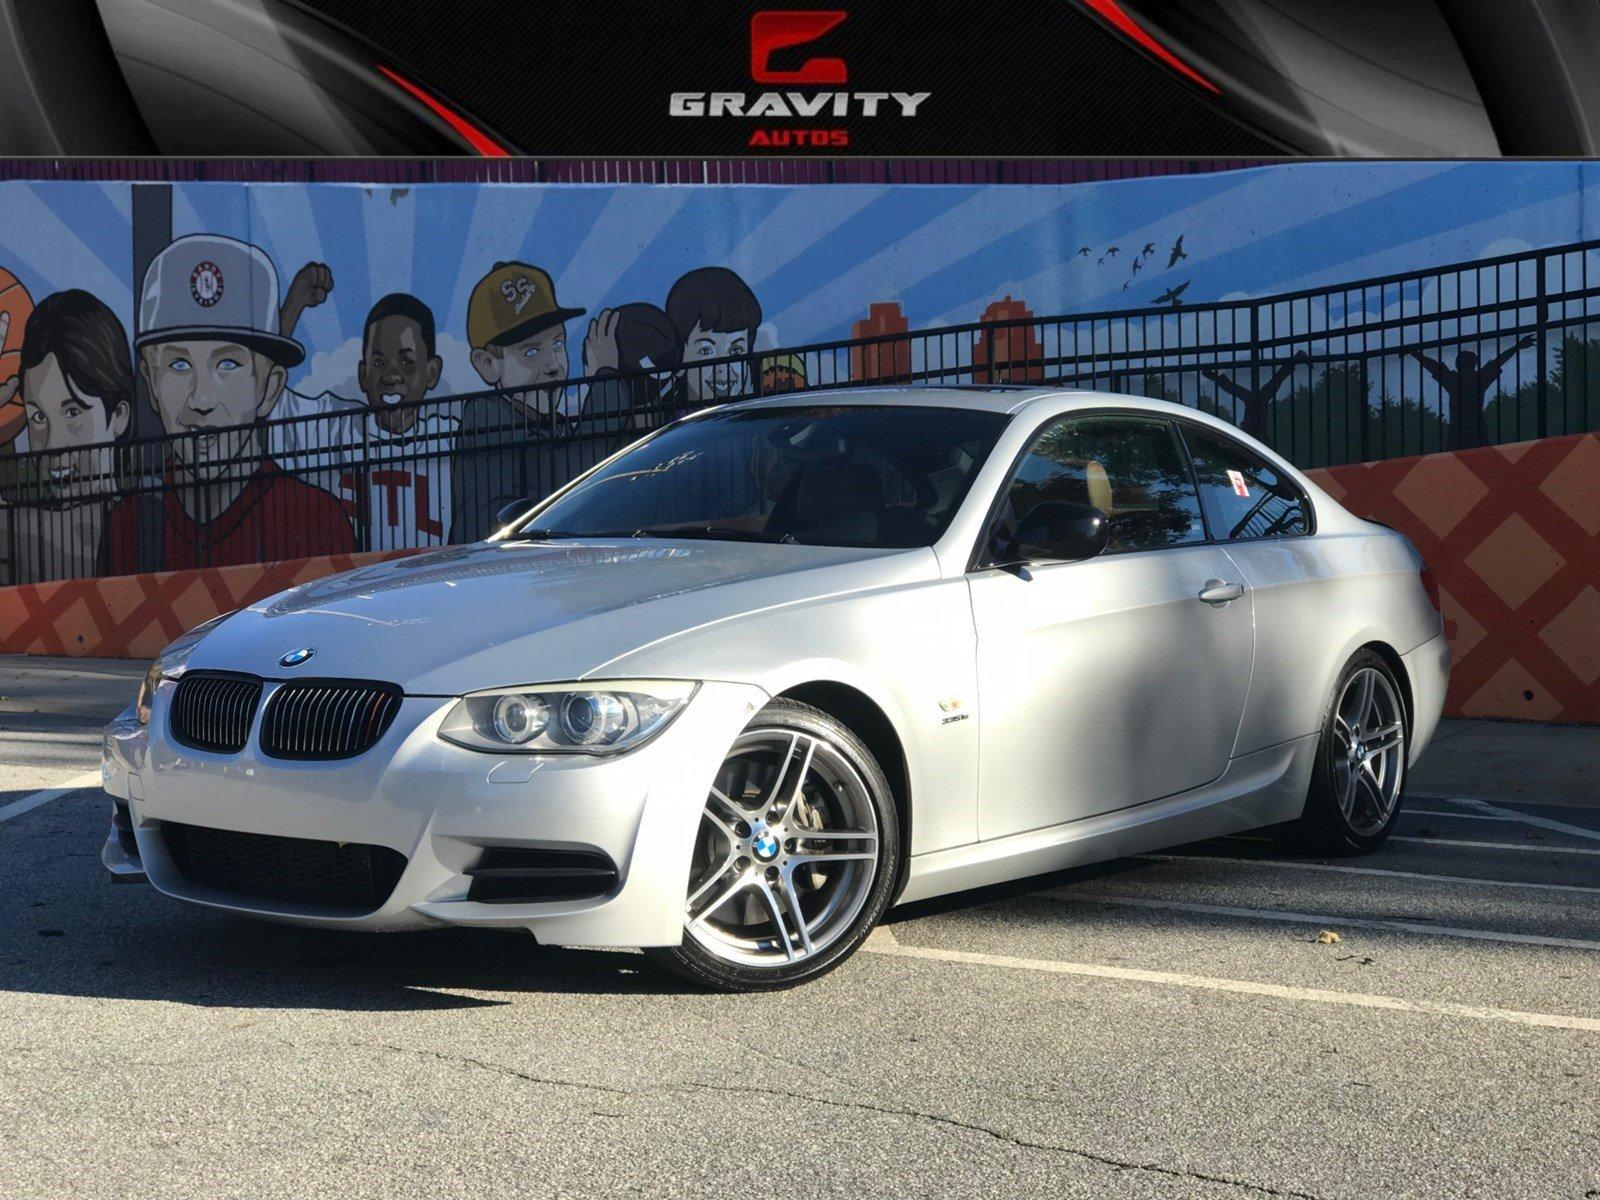 Gravity Auto Sandy Springs >> 2013 Bmw 3 Series 335is Stock 218003 For Sale Near Sandy Springs